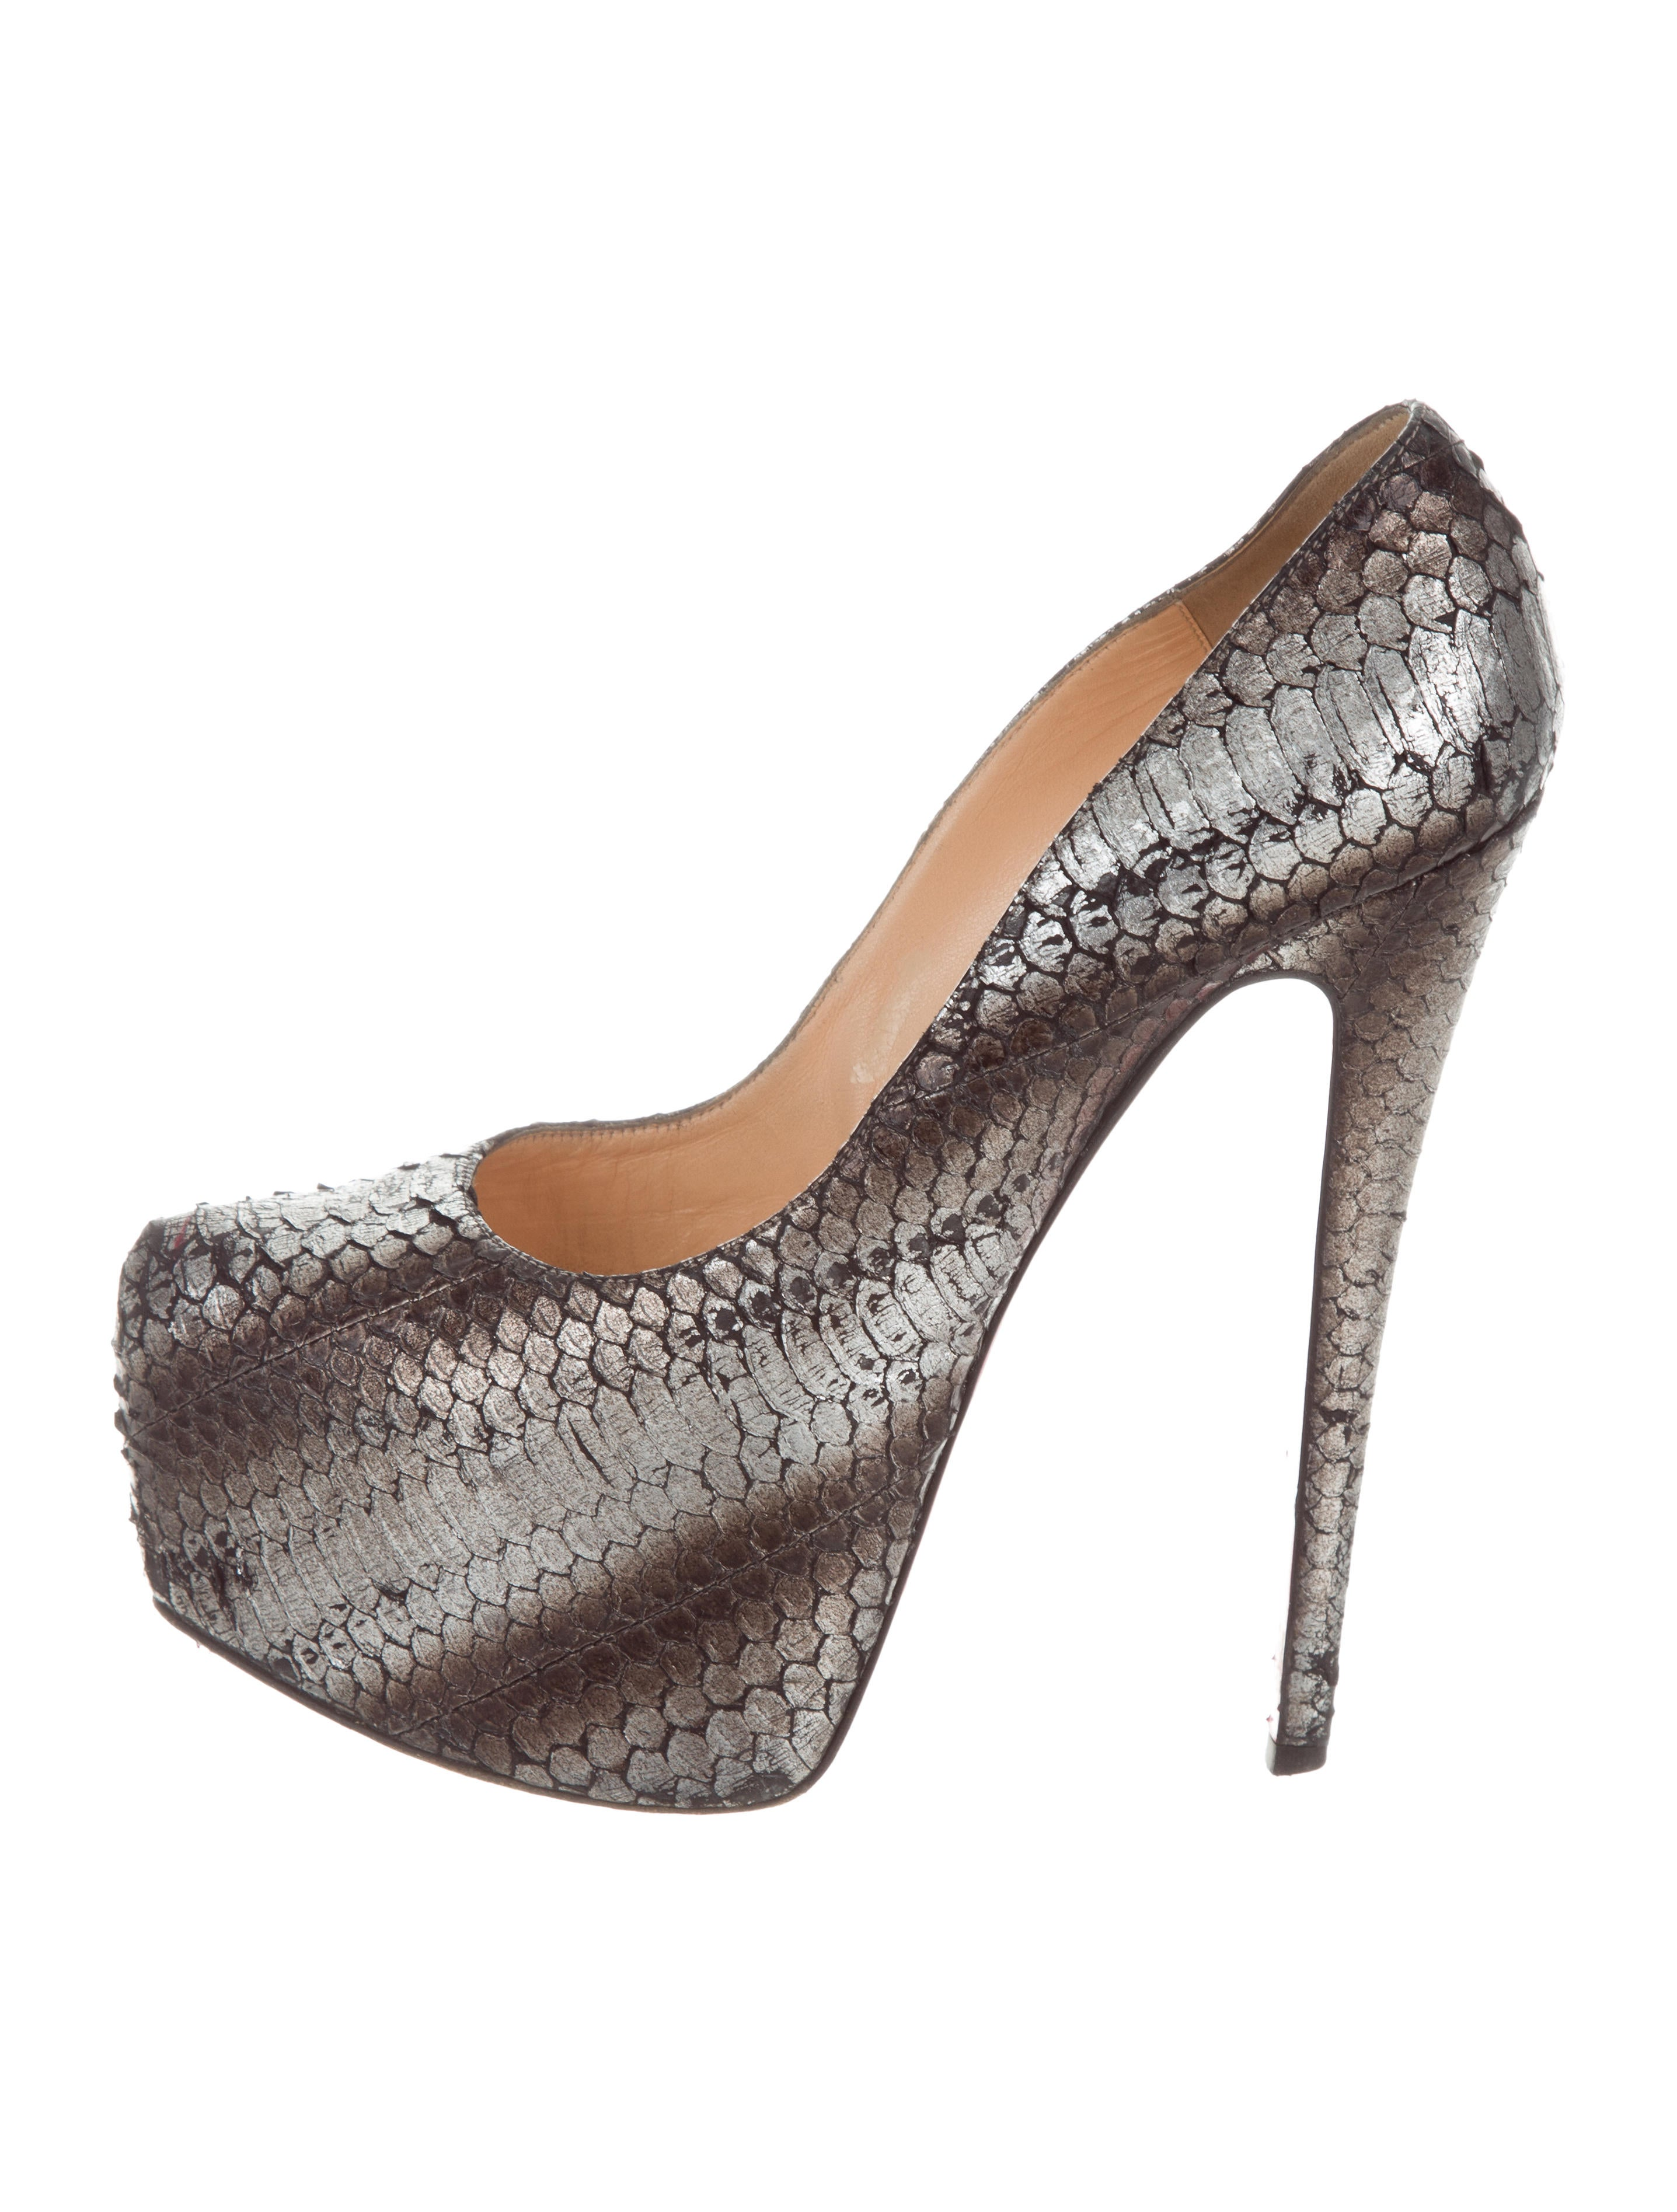 Christian Louboutin Highness Metallic Python Pumps excellent sale online clearance reliable discount sast buy cheap lowest price LJgRXNii